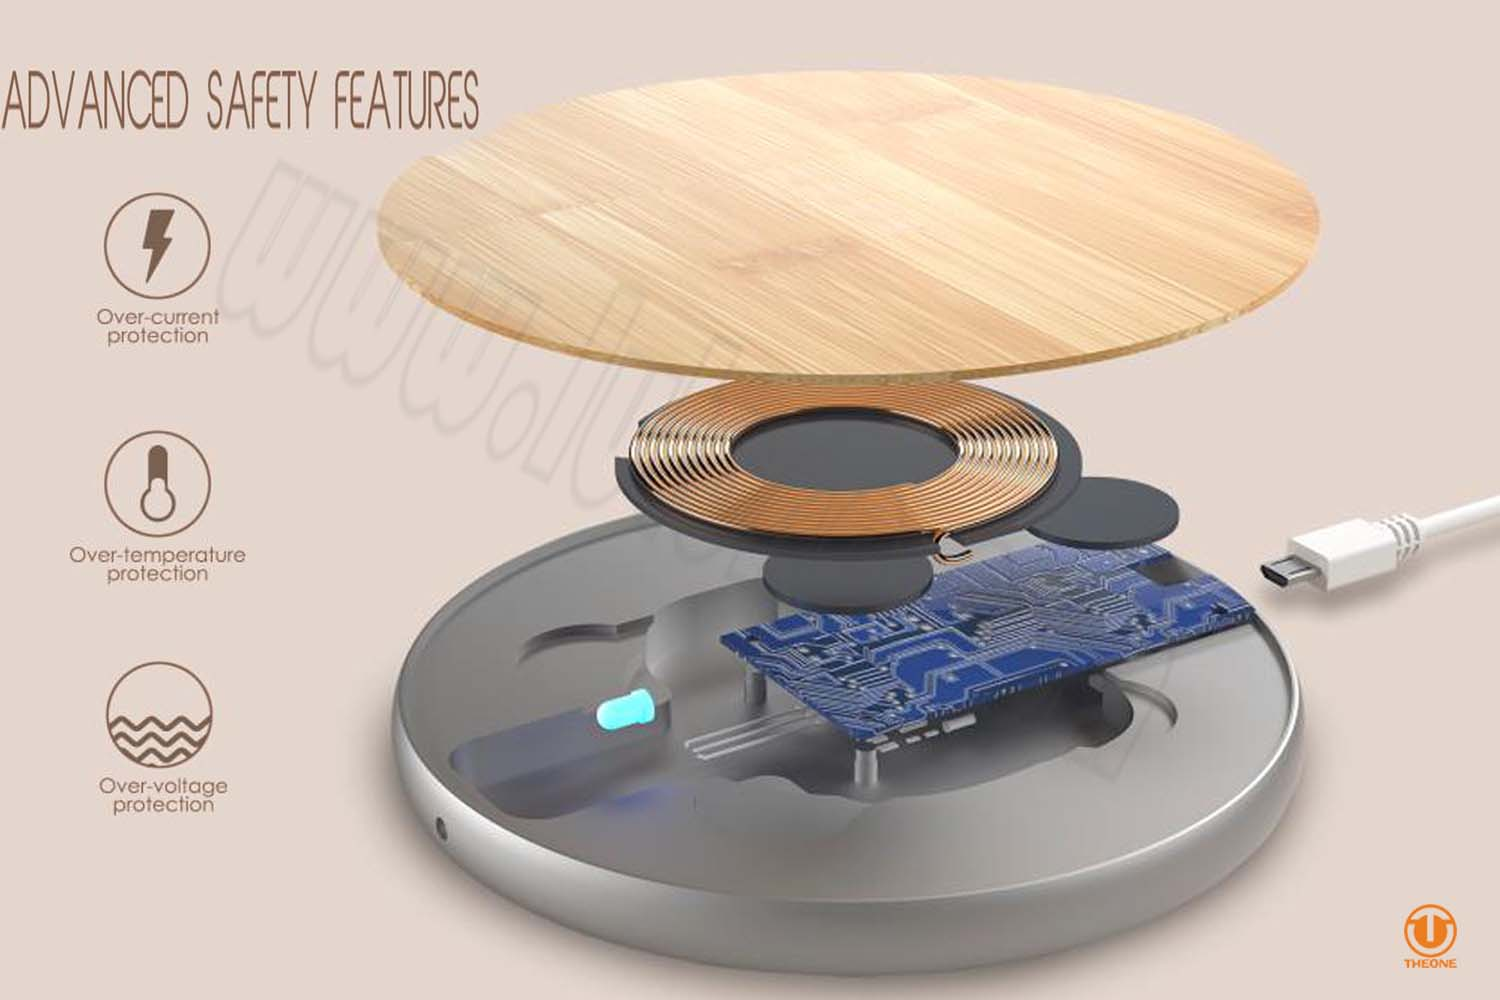 tw02 3 wireless charger